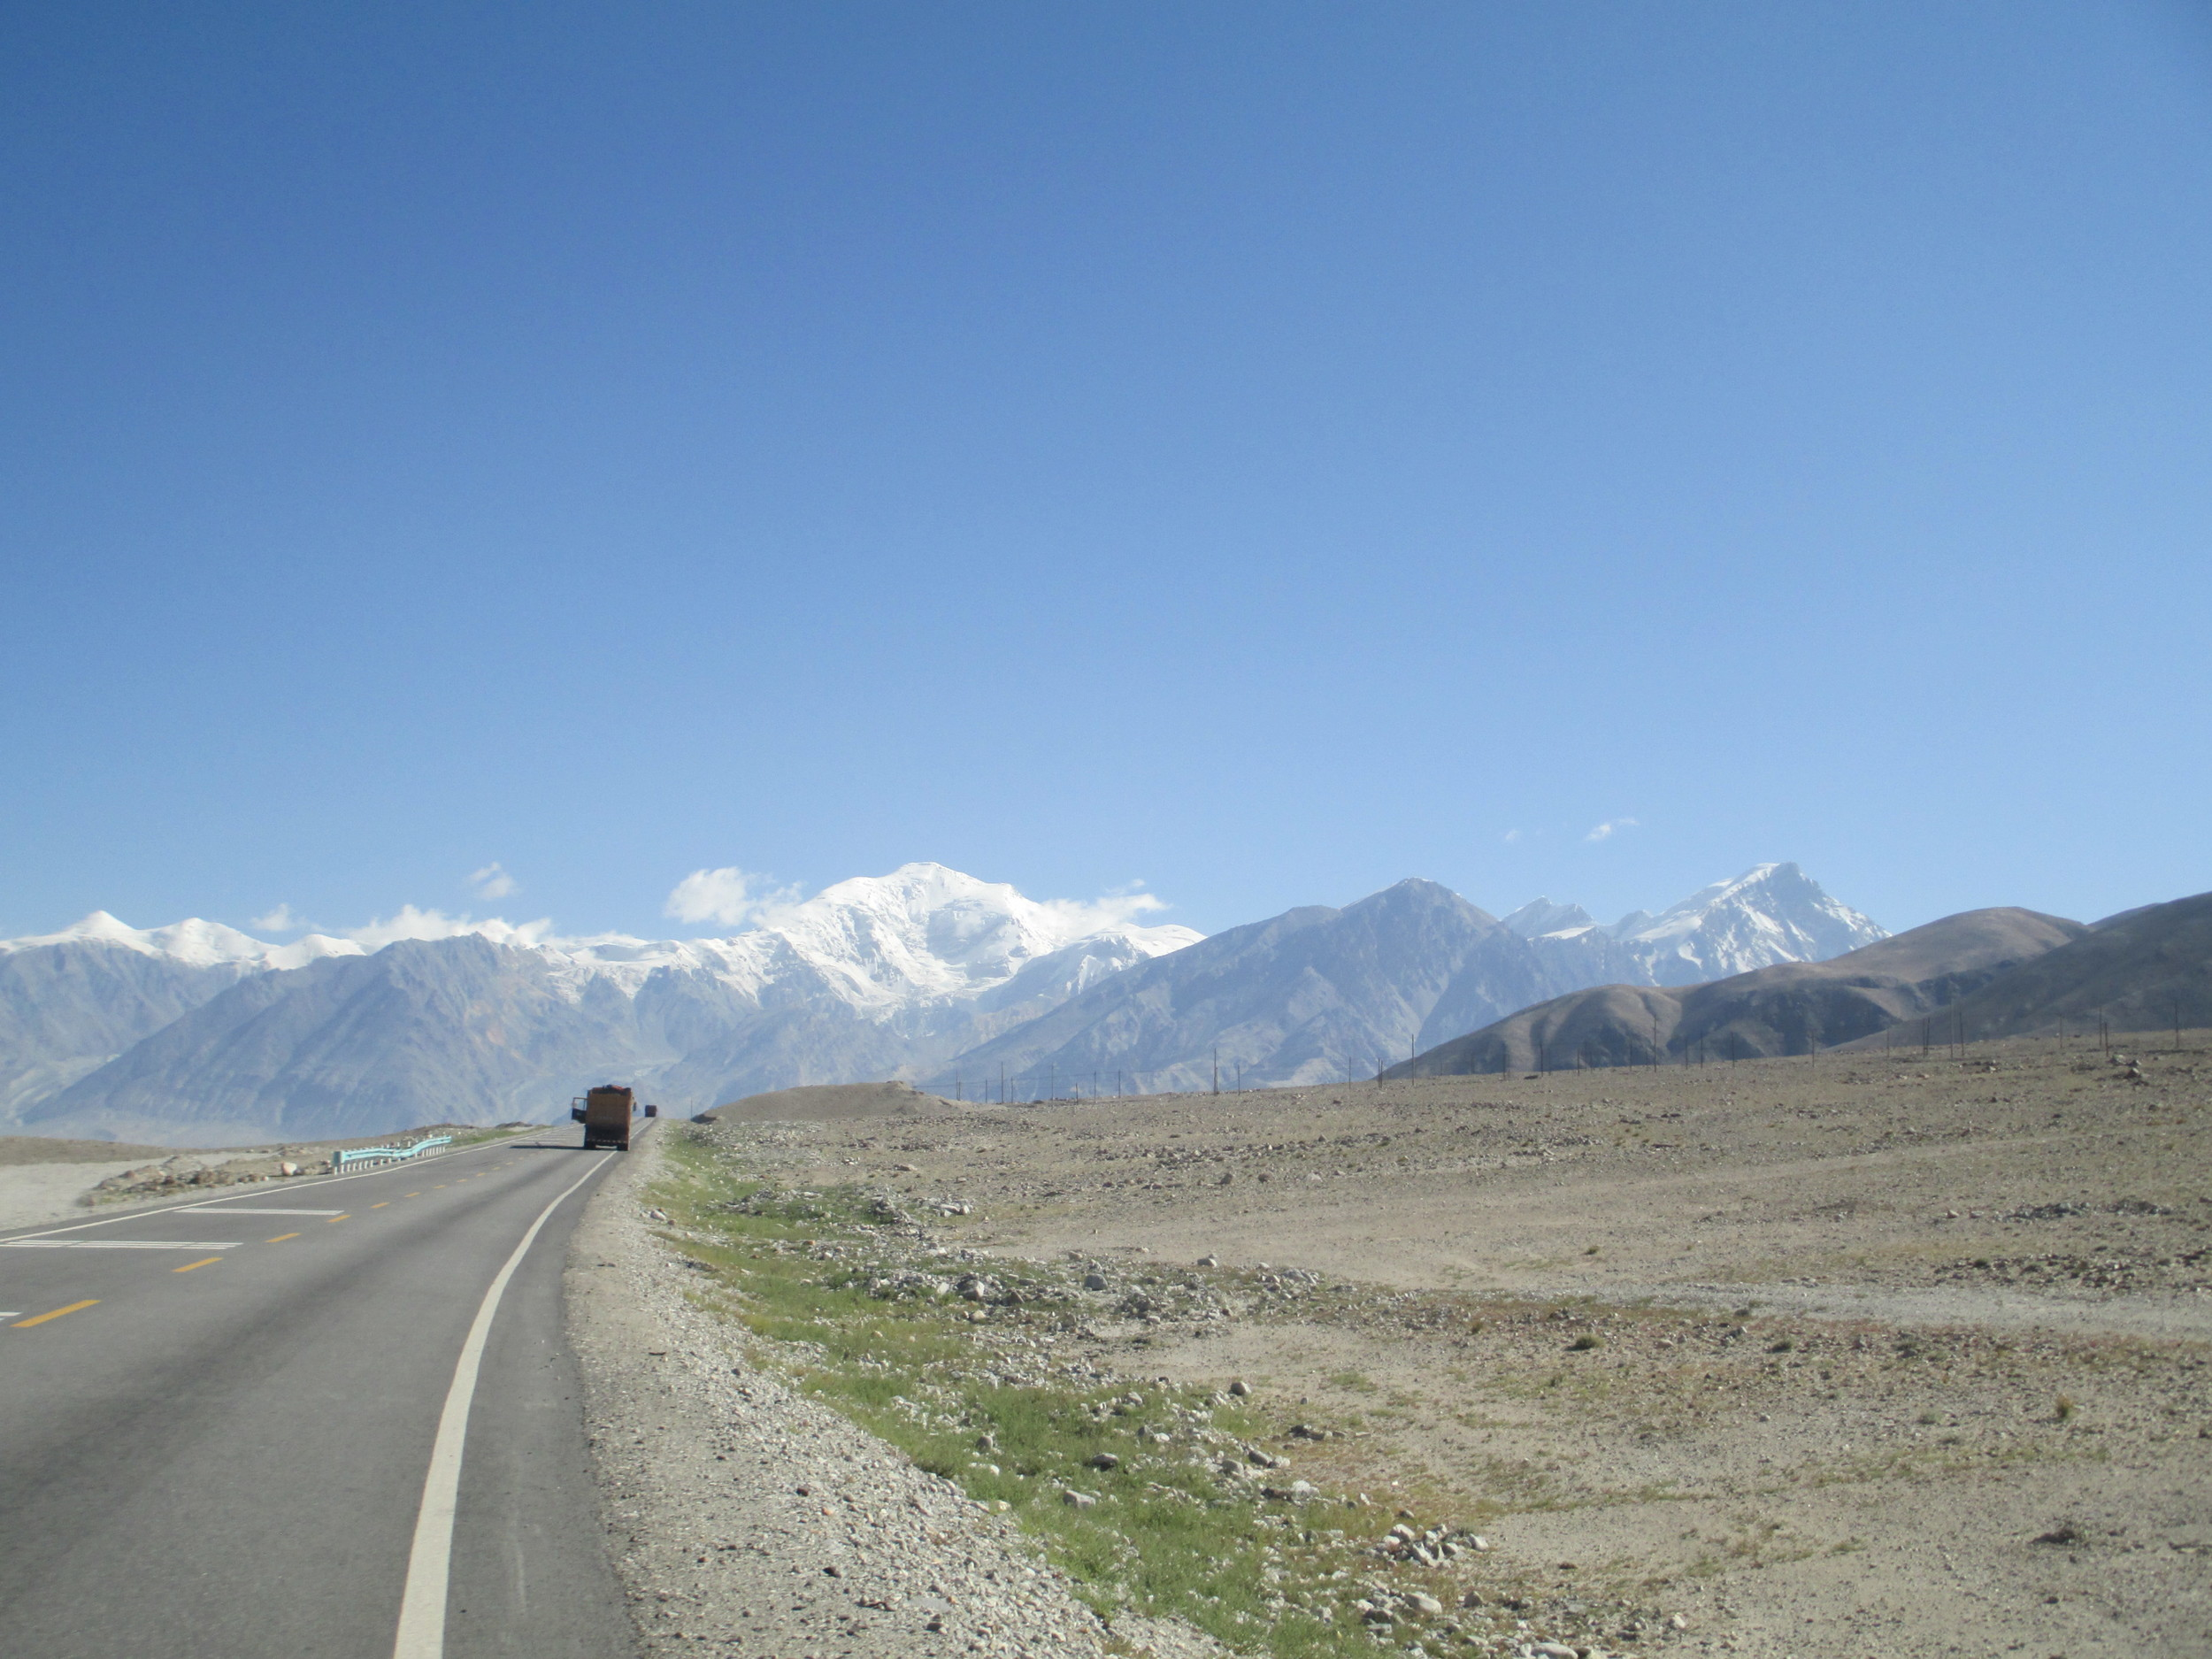 The Karakorum highway final 200kms towards Kashgar